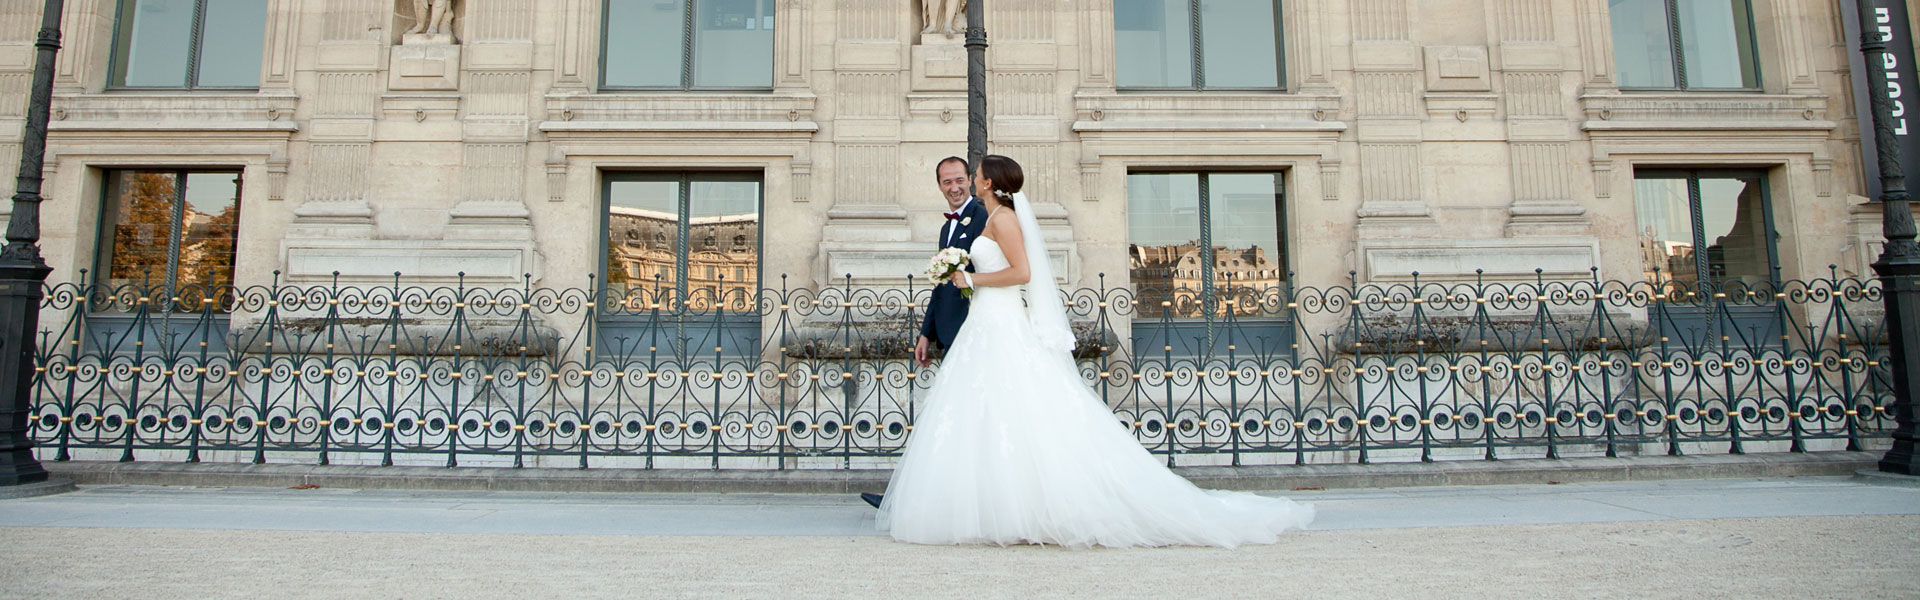 Laura & Fabien by Wedding Video & Photo